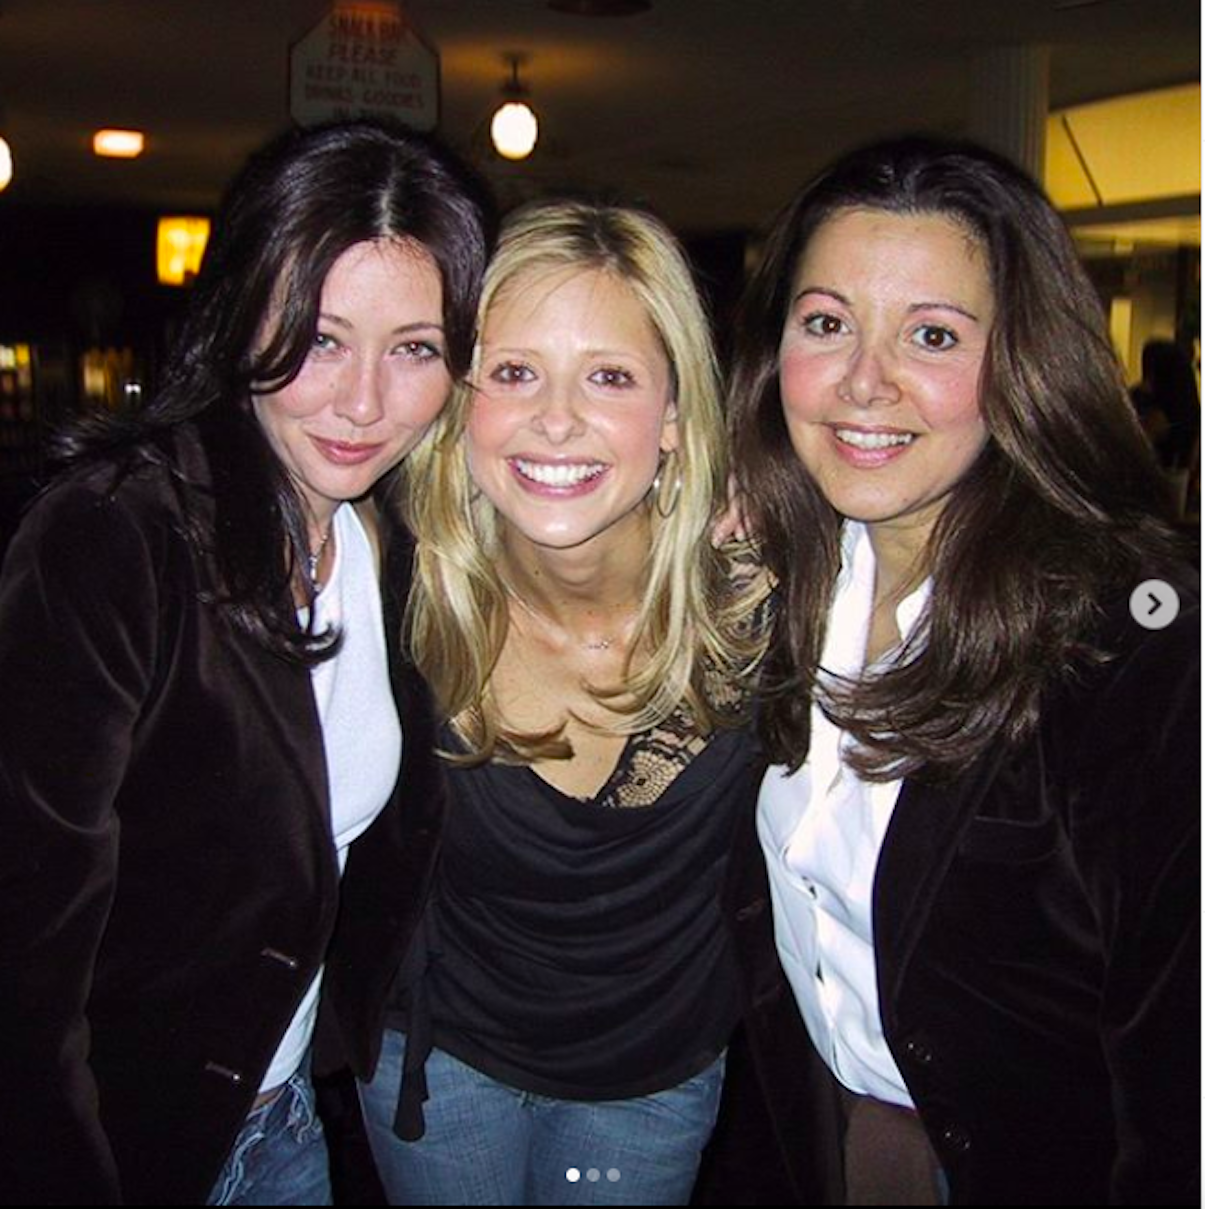 Shannen Doherty pictured with Sarah Michell and Gellar Deborah